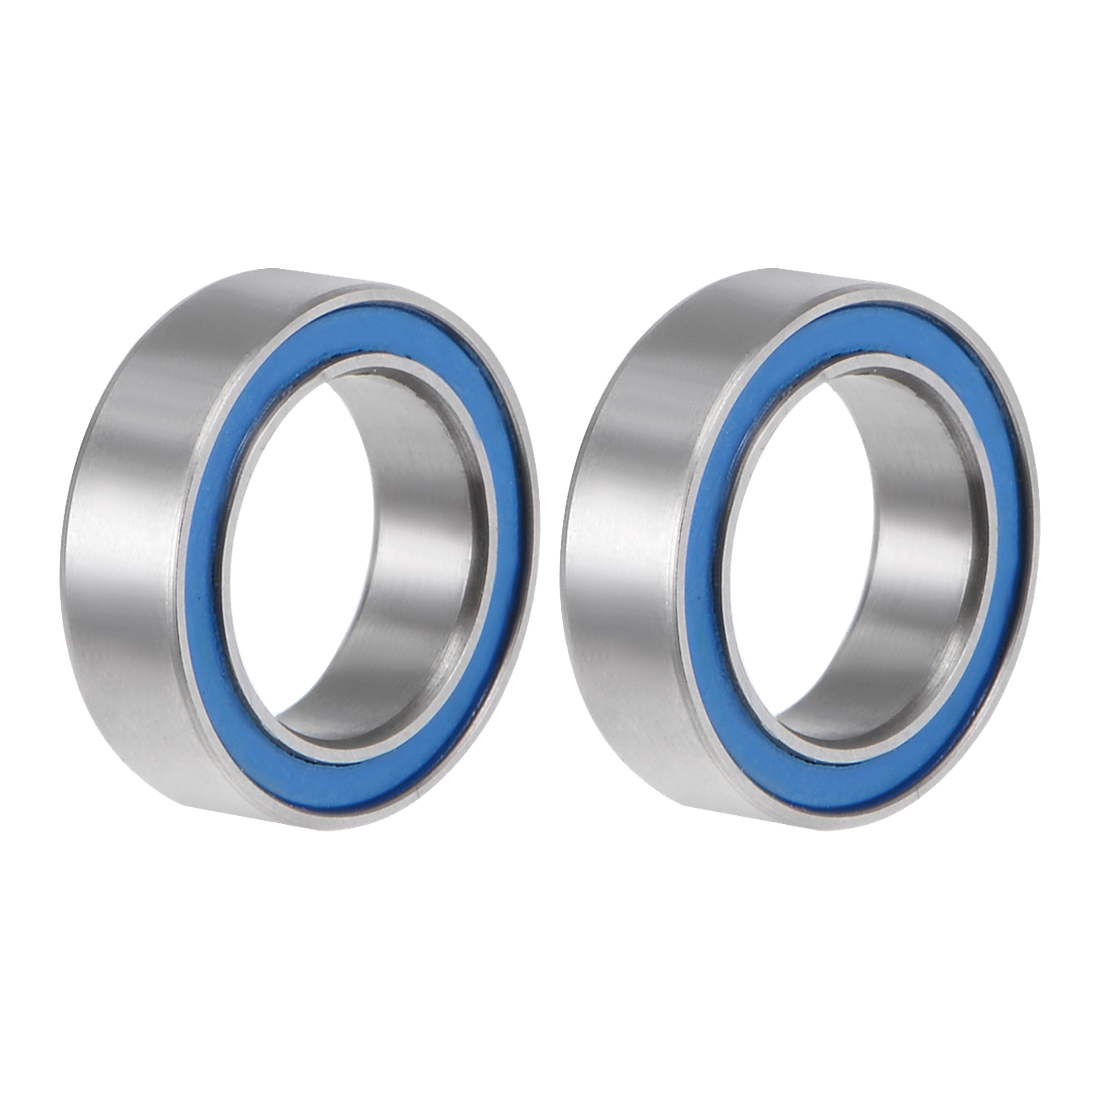 Uxcell MR128-2RS Ball Bearing 8x12x3.5mm Double Sealed ABEC-3 Bearings 2pcs